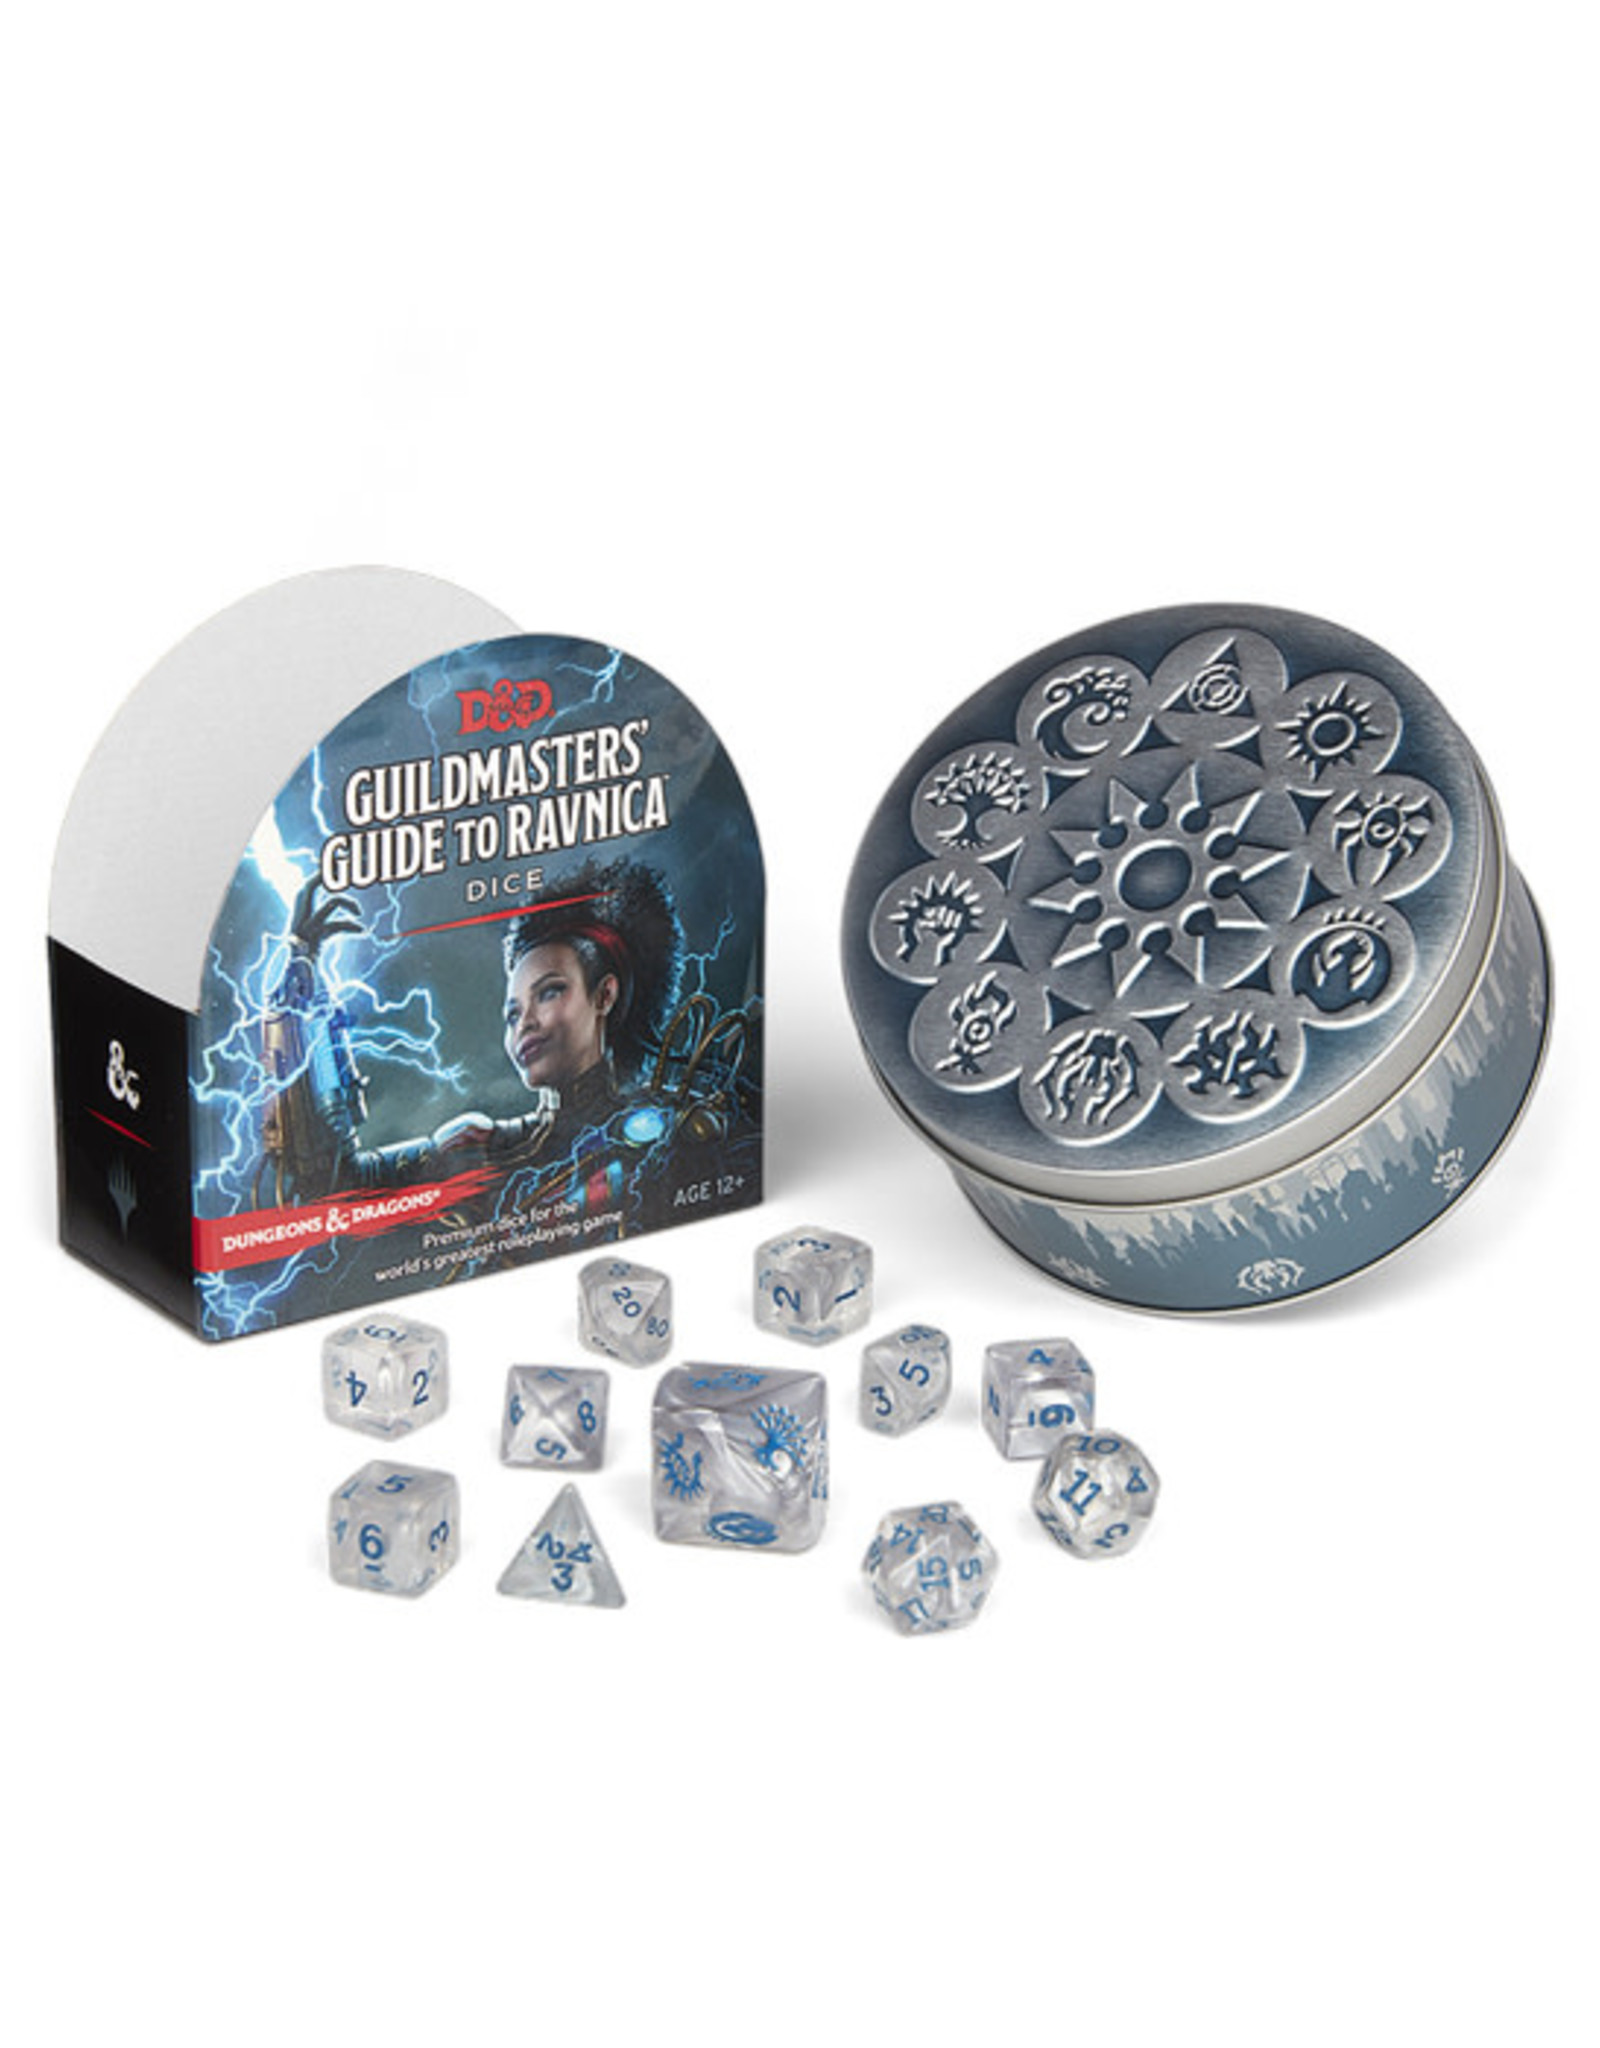 Dungeons & Dragons Dungeons & Dragons: 5th Edition - Guildmaster's Guide to Ravnica - Dice Set